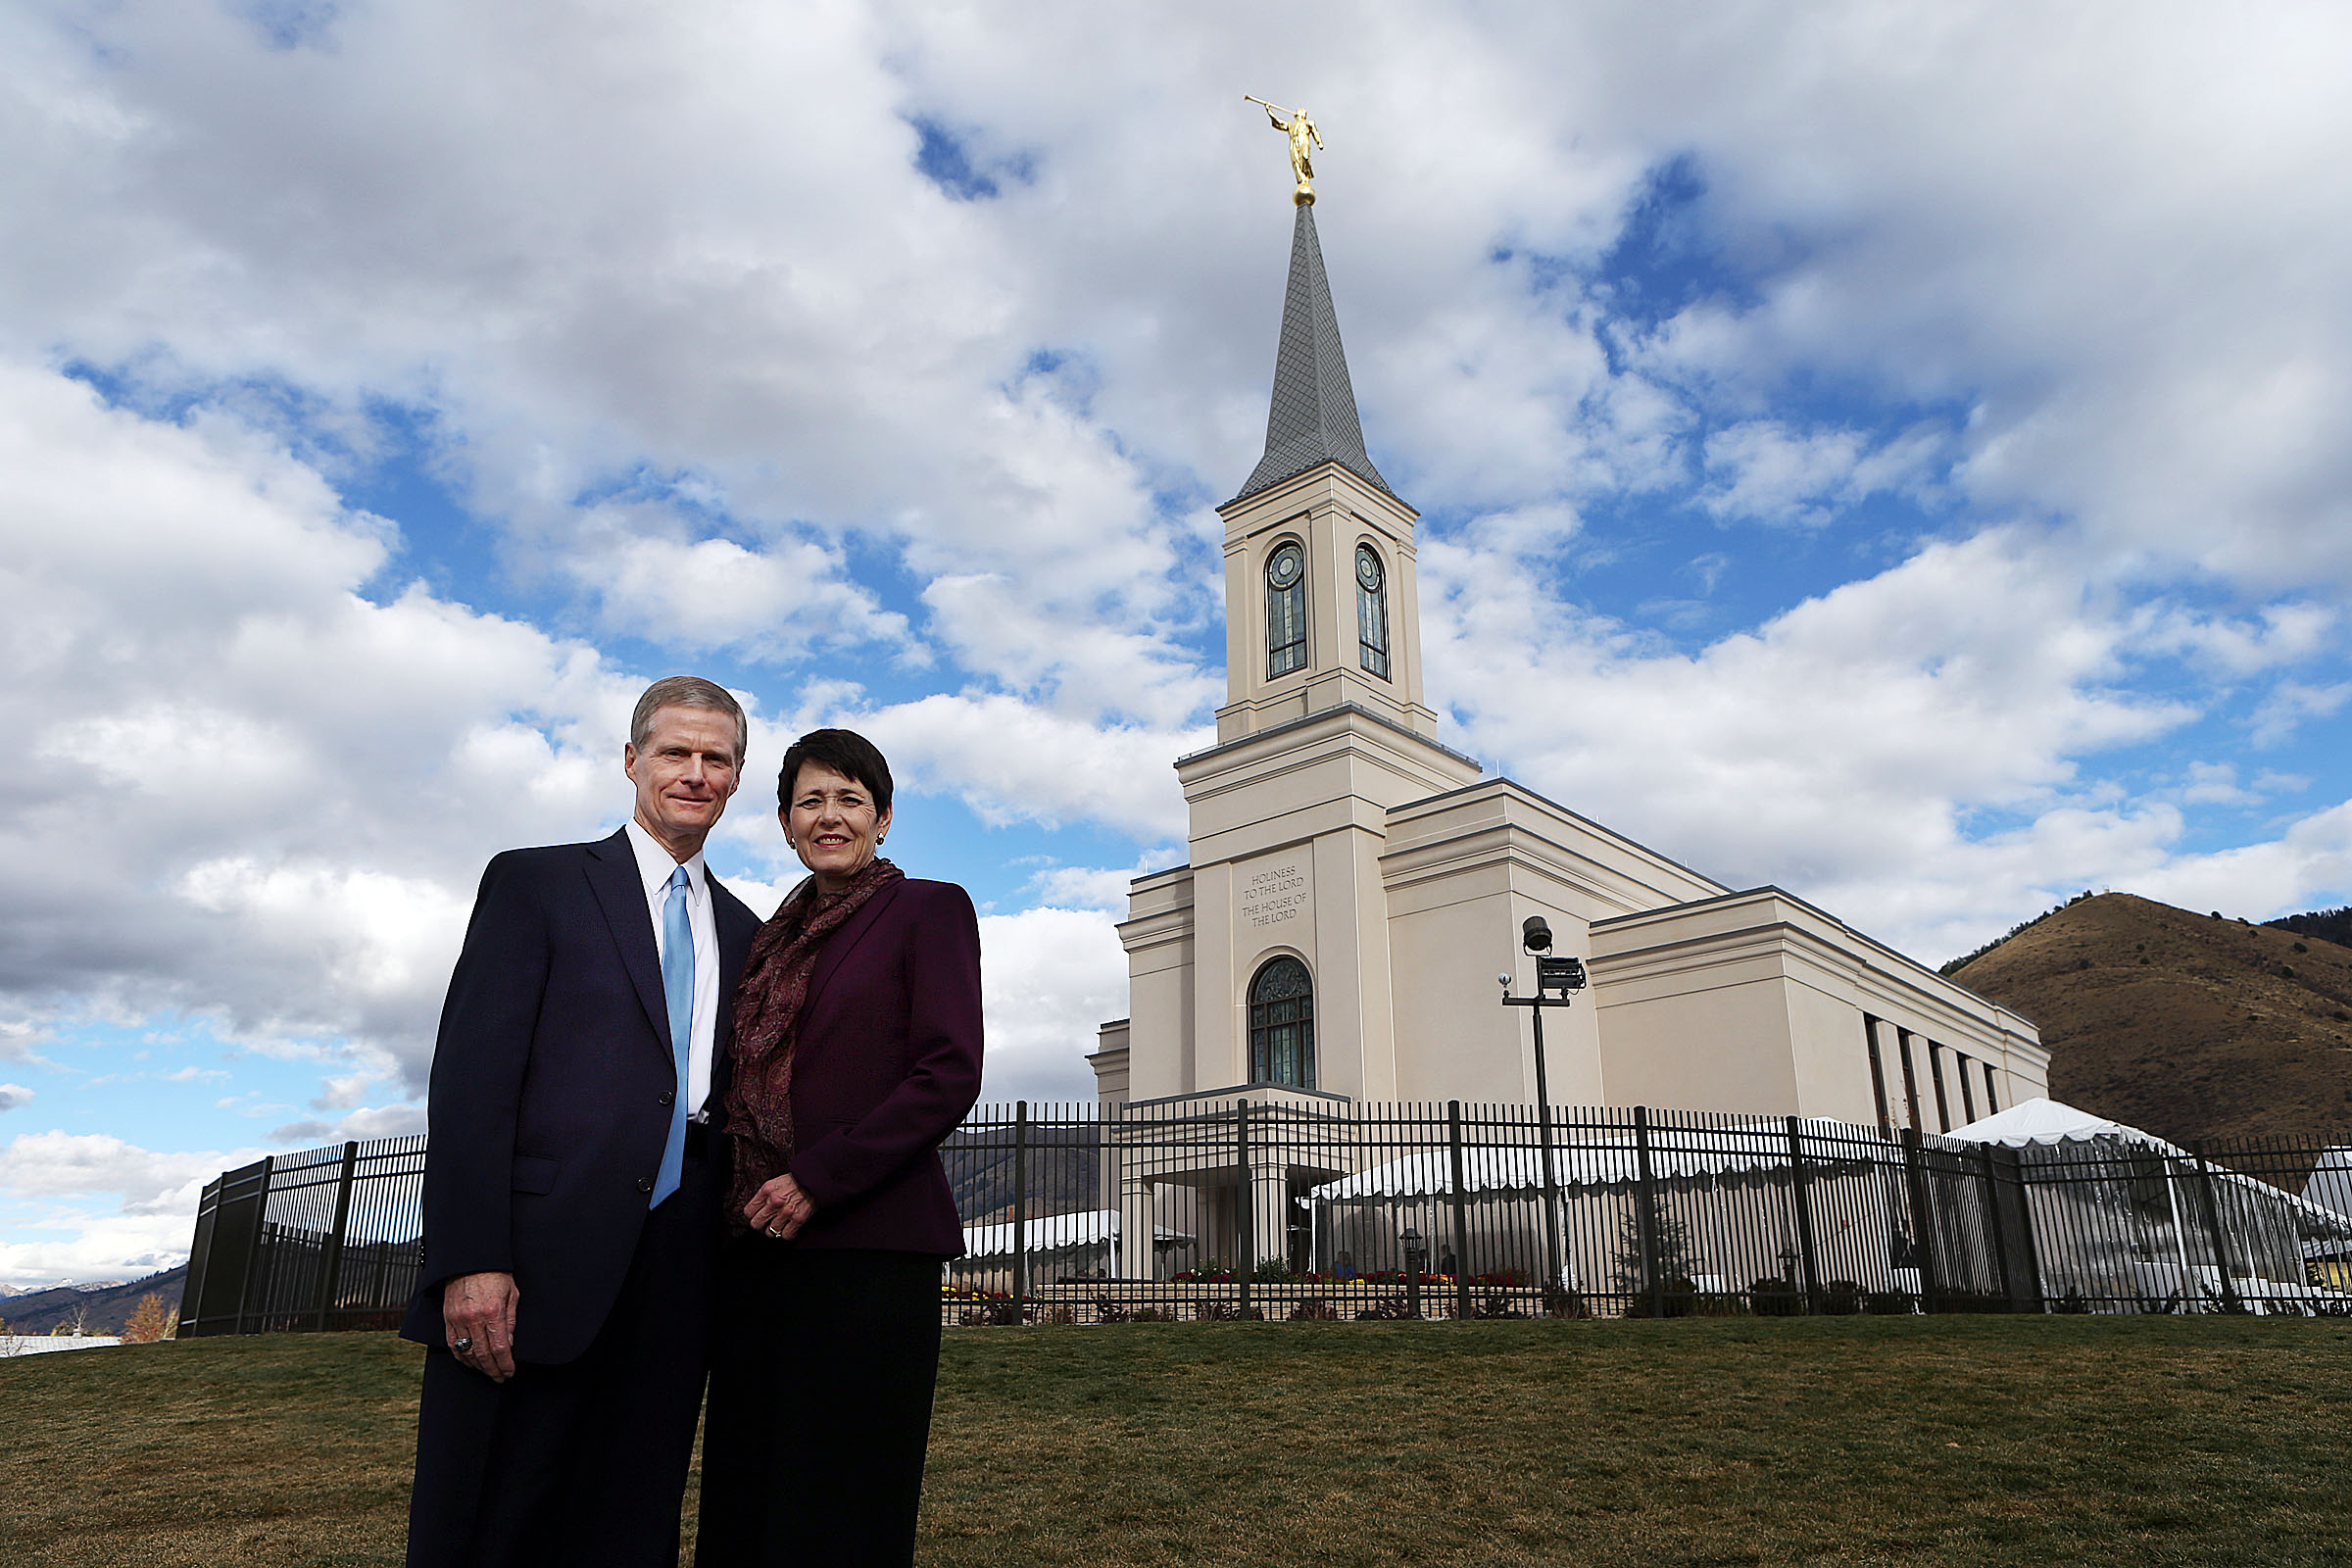 Elder David A. and Sister Susan Bednar pose for a photo at the Star Valley Wyoming Temple in Afton, Wyoming, on Saturday, Oct. 29, 2016.